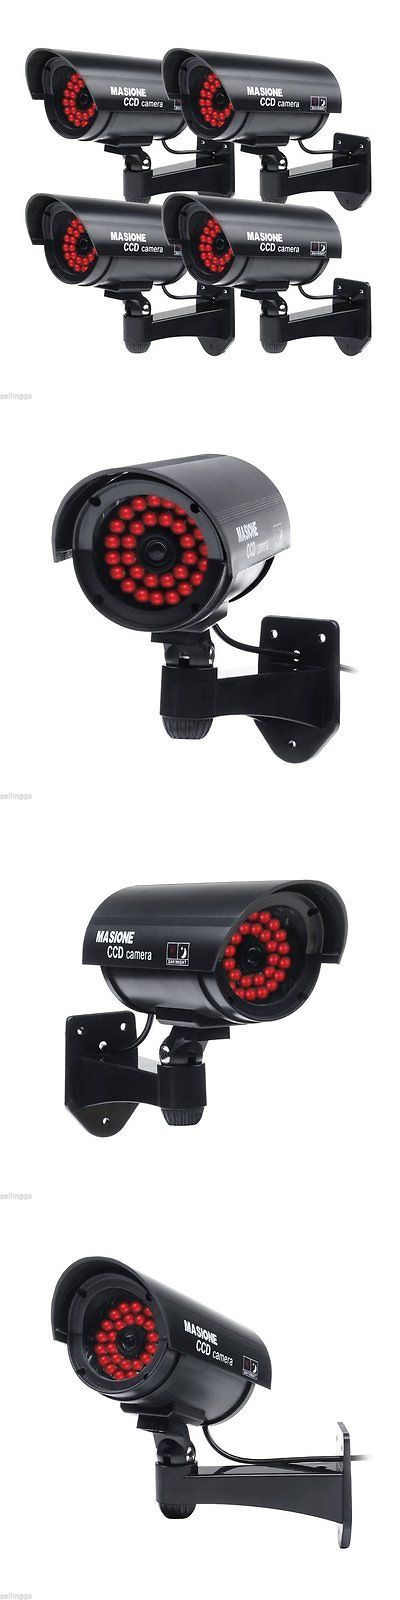 Dummy Cameras: Masione 4 Pack Outdoor Fake Dummy Security Camera With 30 Illuminating Led Lig -> BUY IT NOW ONLY: $31.83 on eBay!